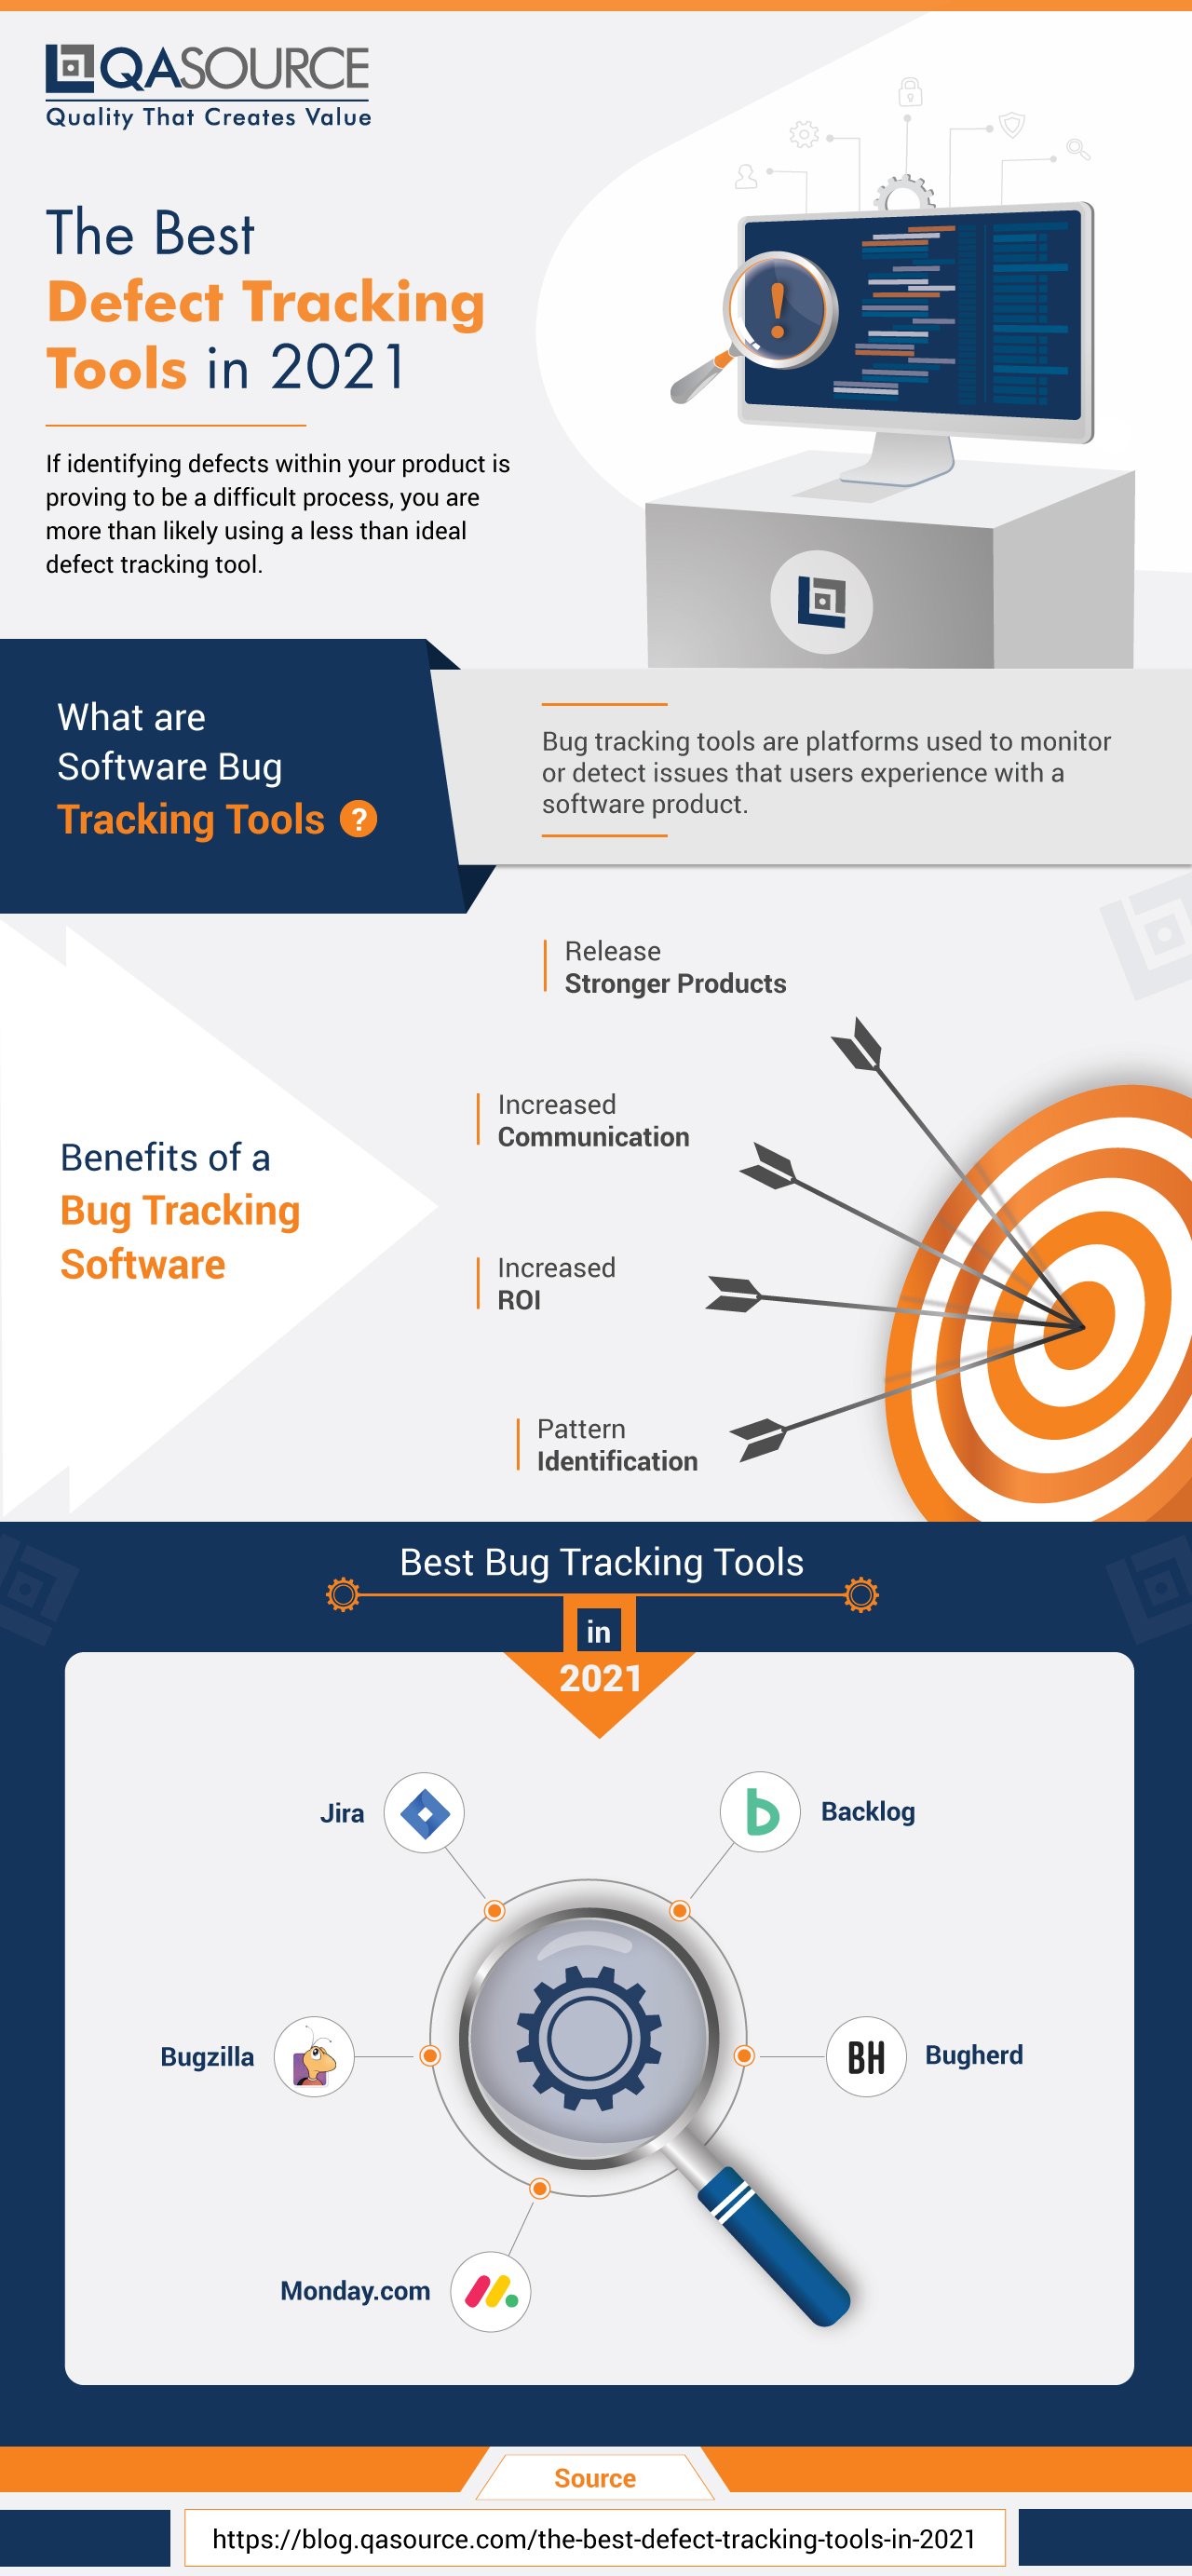 The Best Defect Tracking Tools in 2021